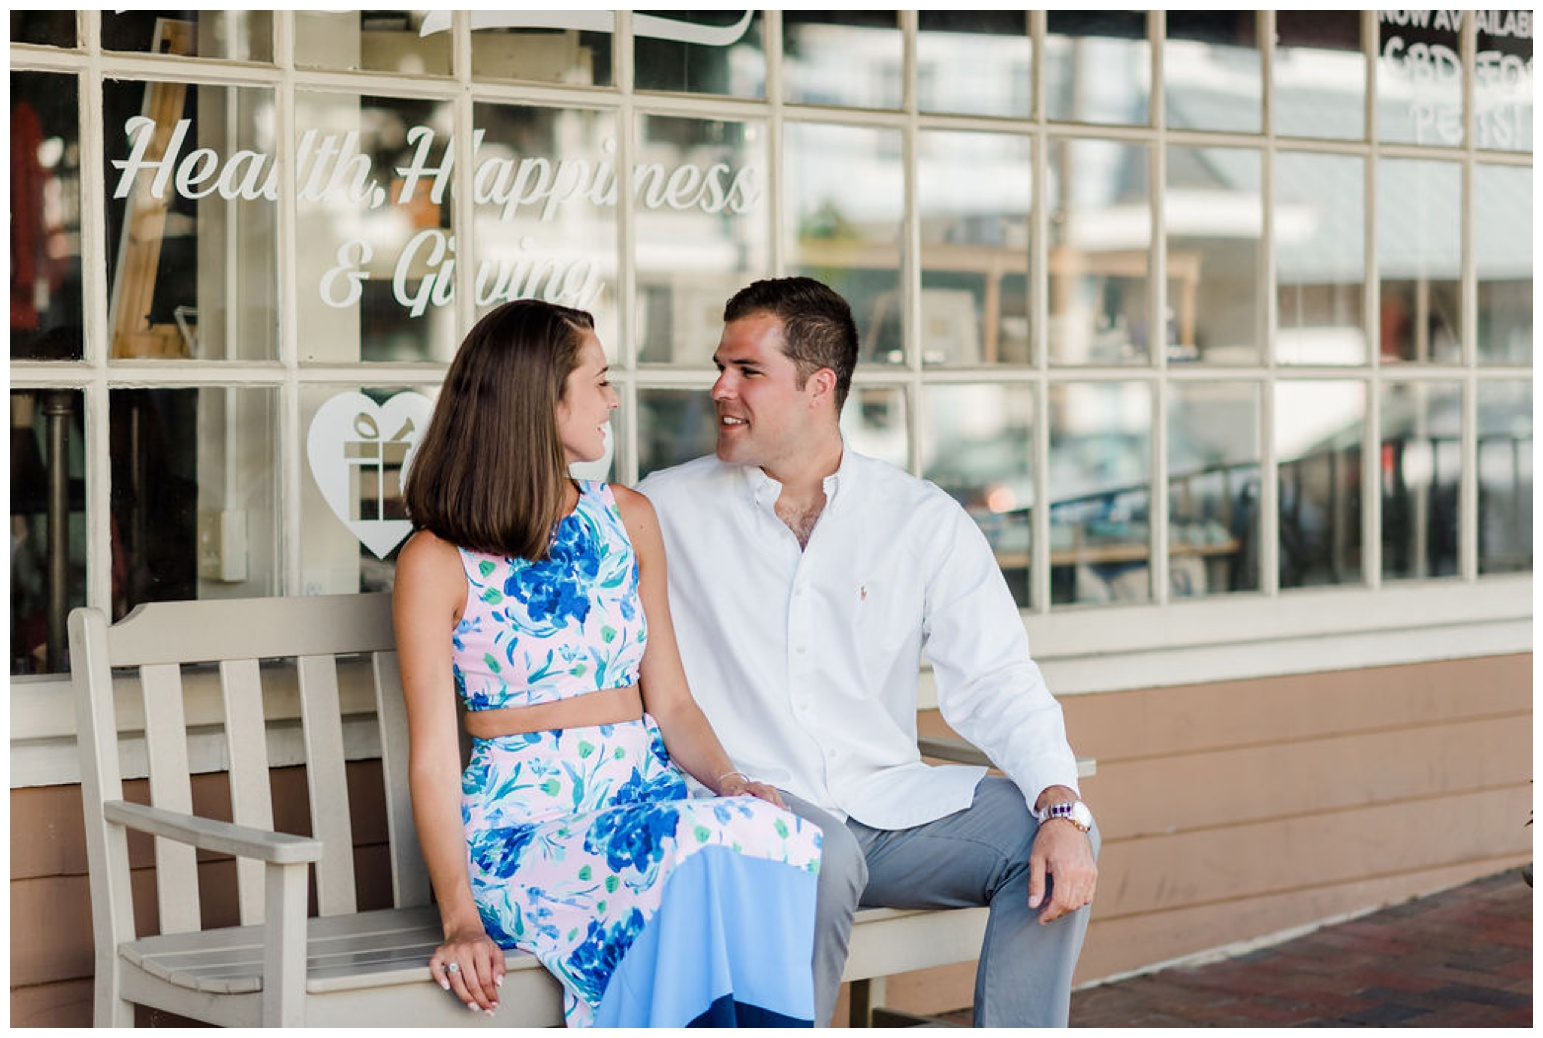 st. michaels engagement shoot - chesapeake bay inspired photo session - coastal maryland inspo full of oyster shells, sailboats, waterfront views from the dock and pier - photo of smiling couple in front of shop on talbot street | now featured on My Eastern Shore Wedding